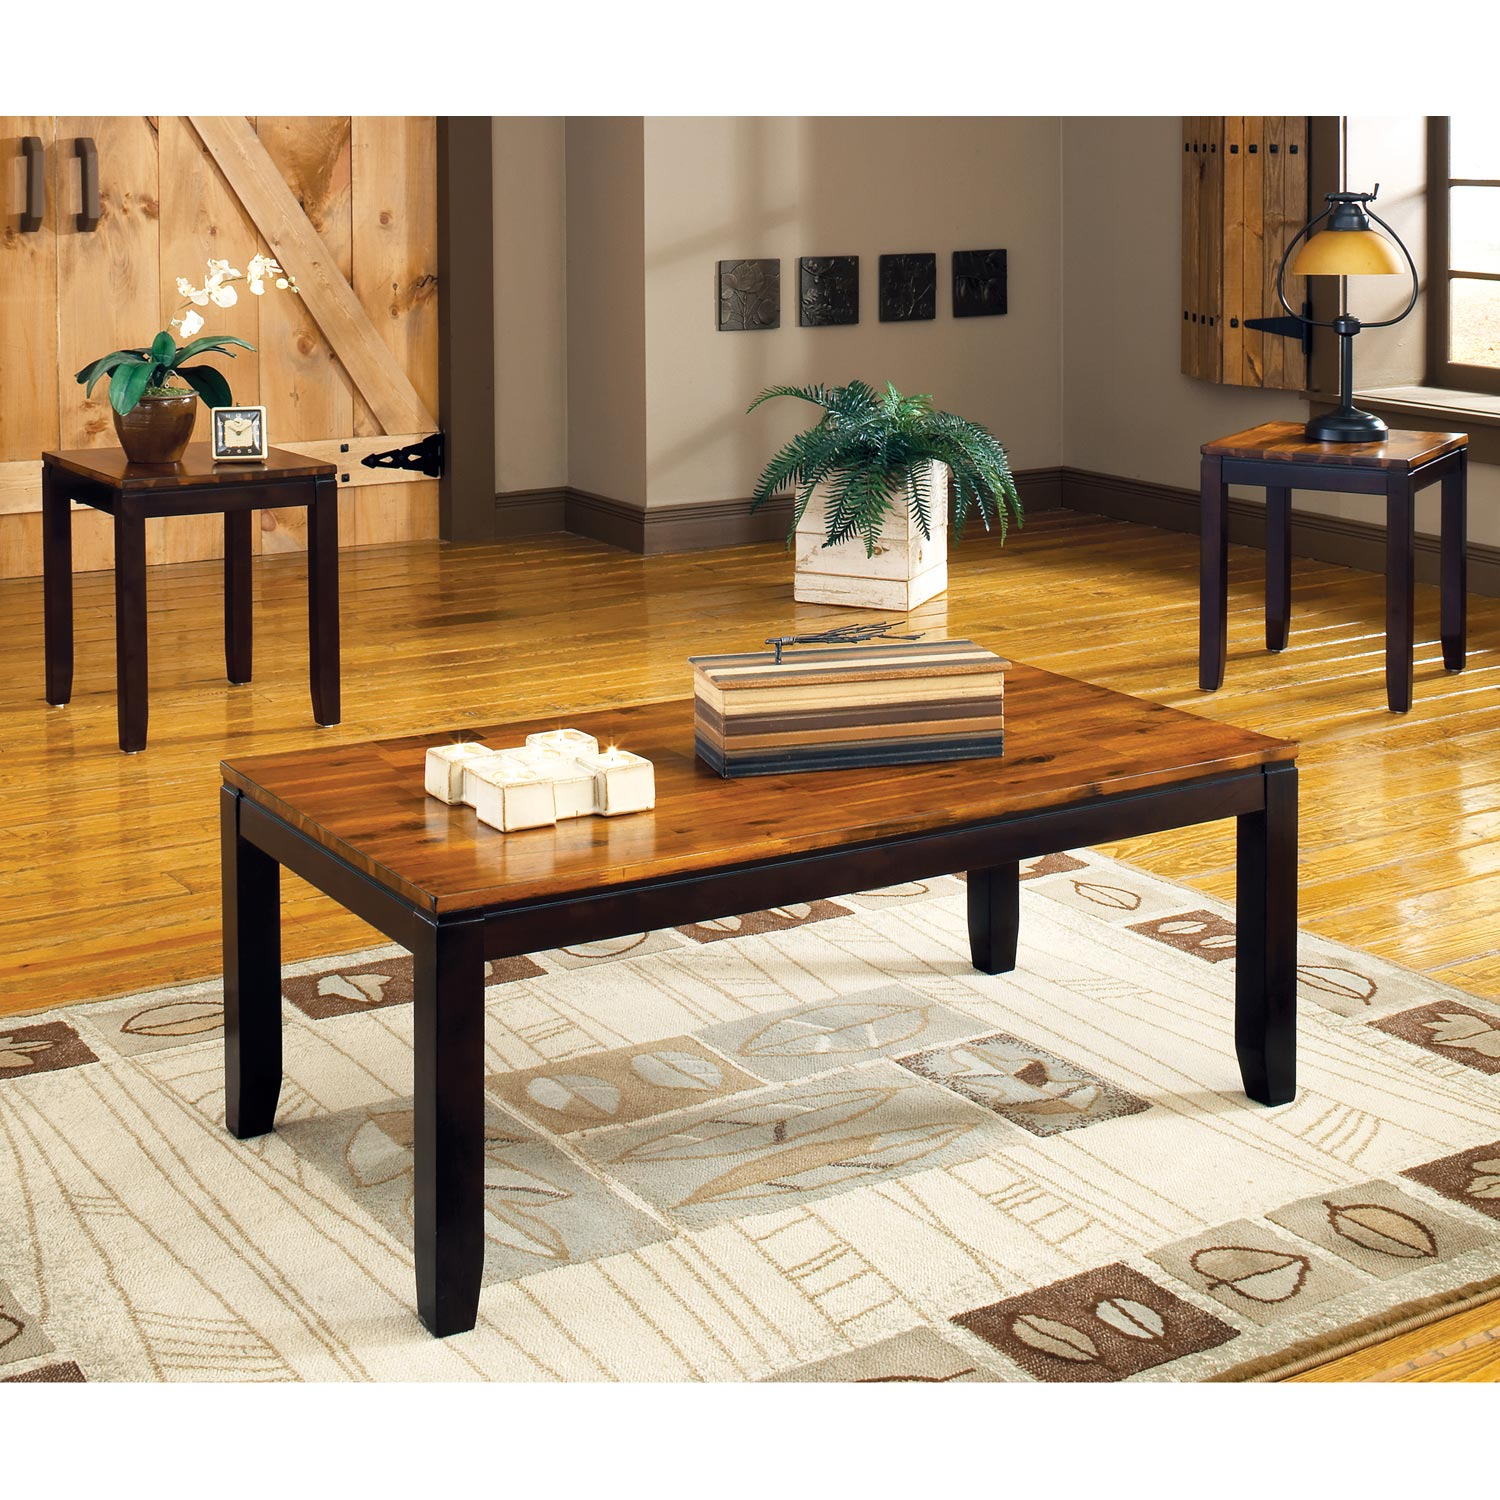 Abaco 3 Piece Occasional Tables Set - Two-Toned Acacia Finish - SSC-AB1000